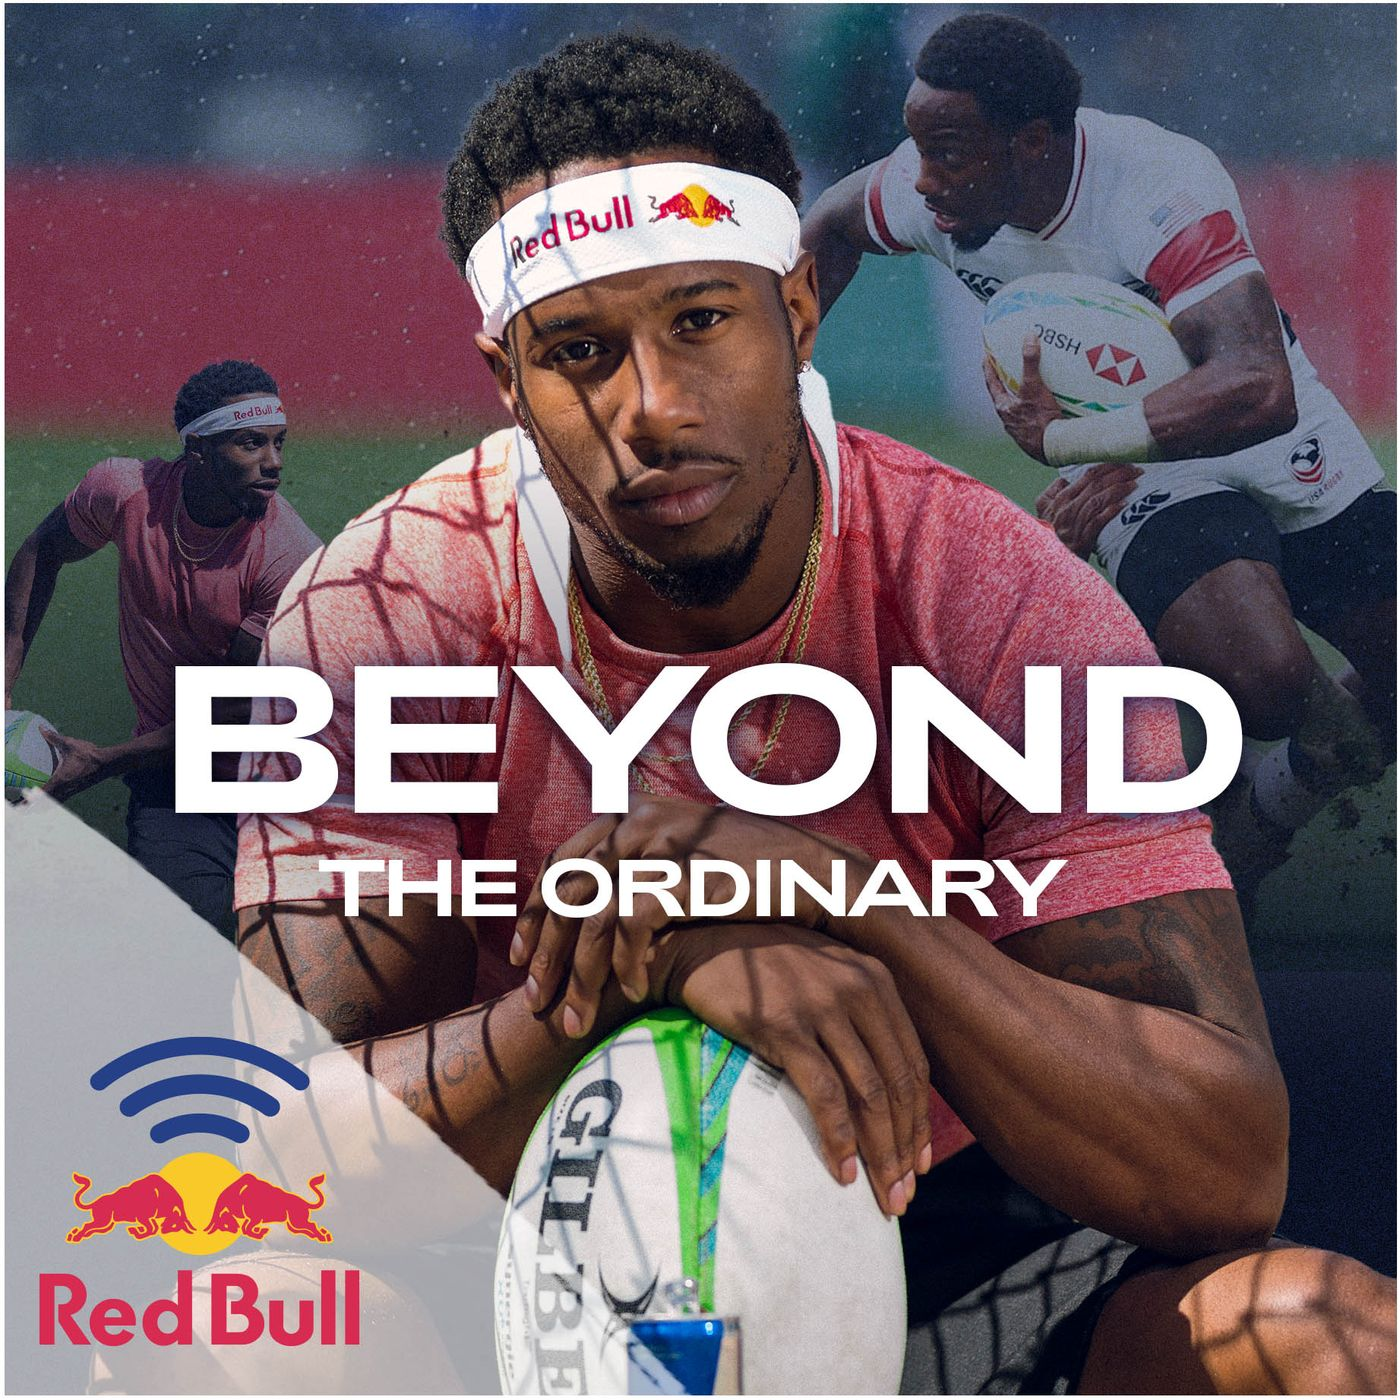 Meet the fastest rugby player in the world who said no to the NFL, Carlin Isles